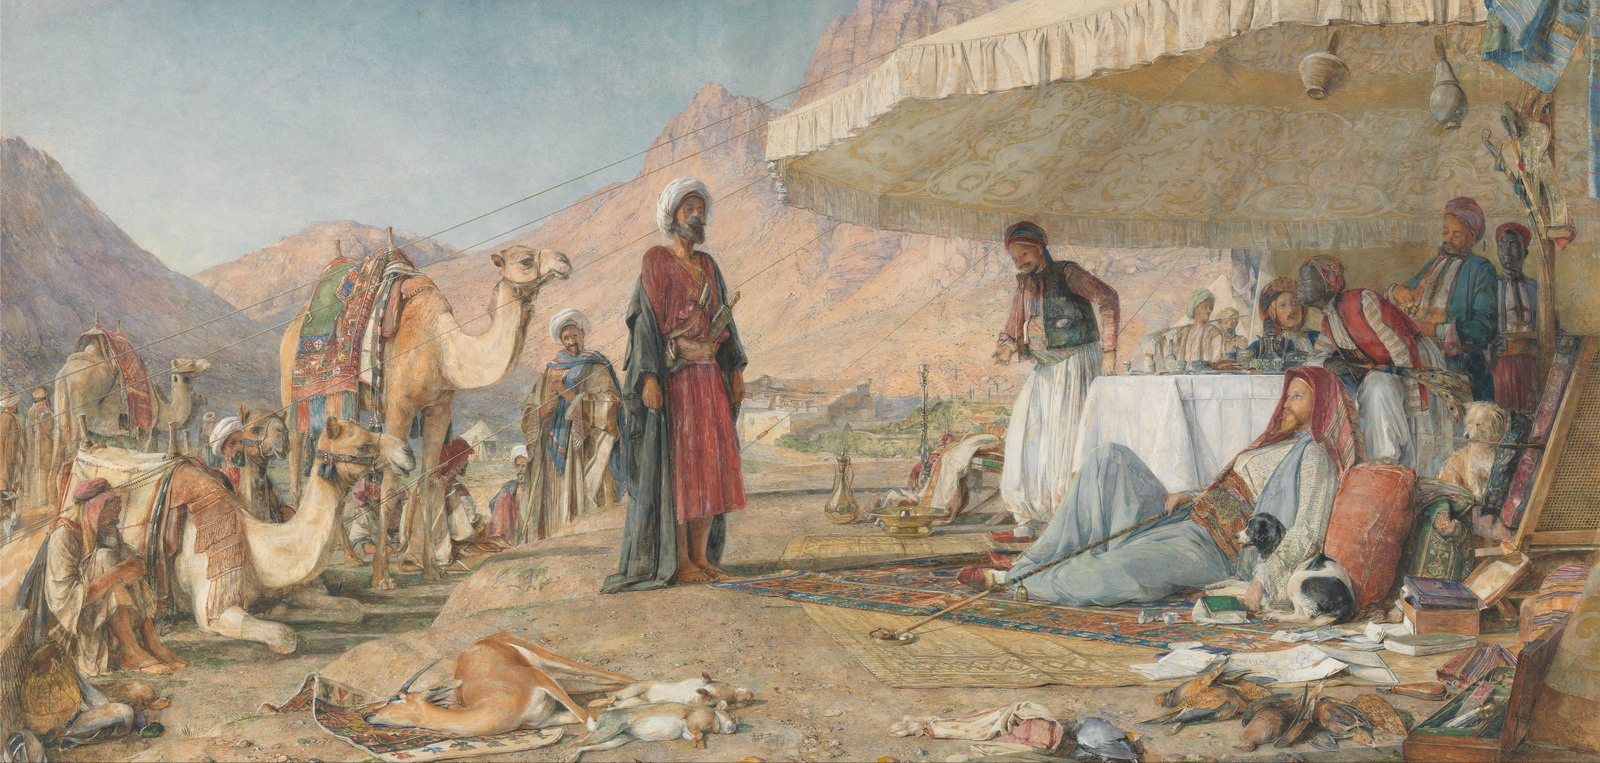 John Frederick Lewis - A Frank Encampment in the Desert of Mount Sinai. 1842 1600